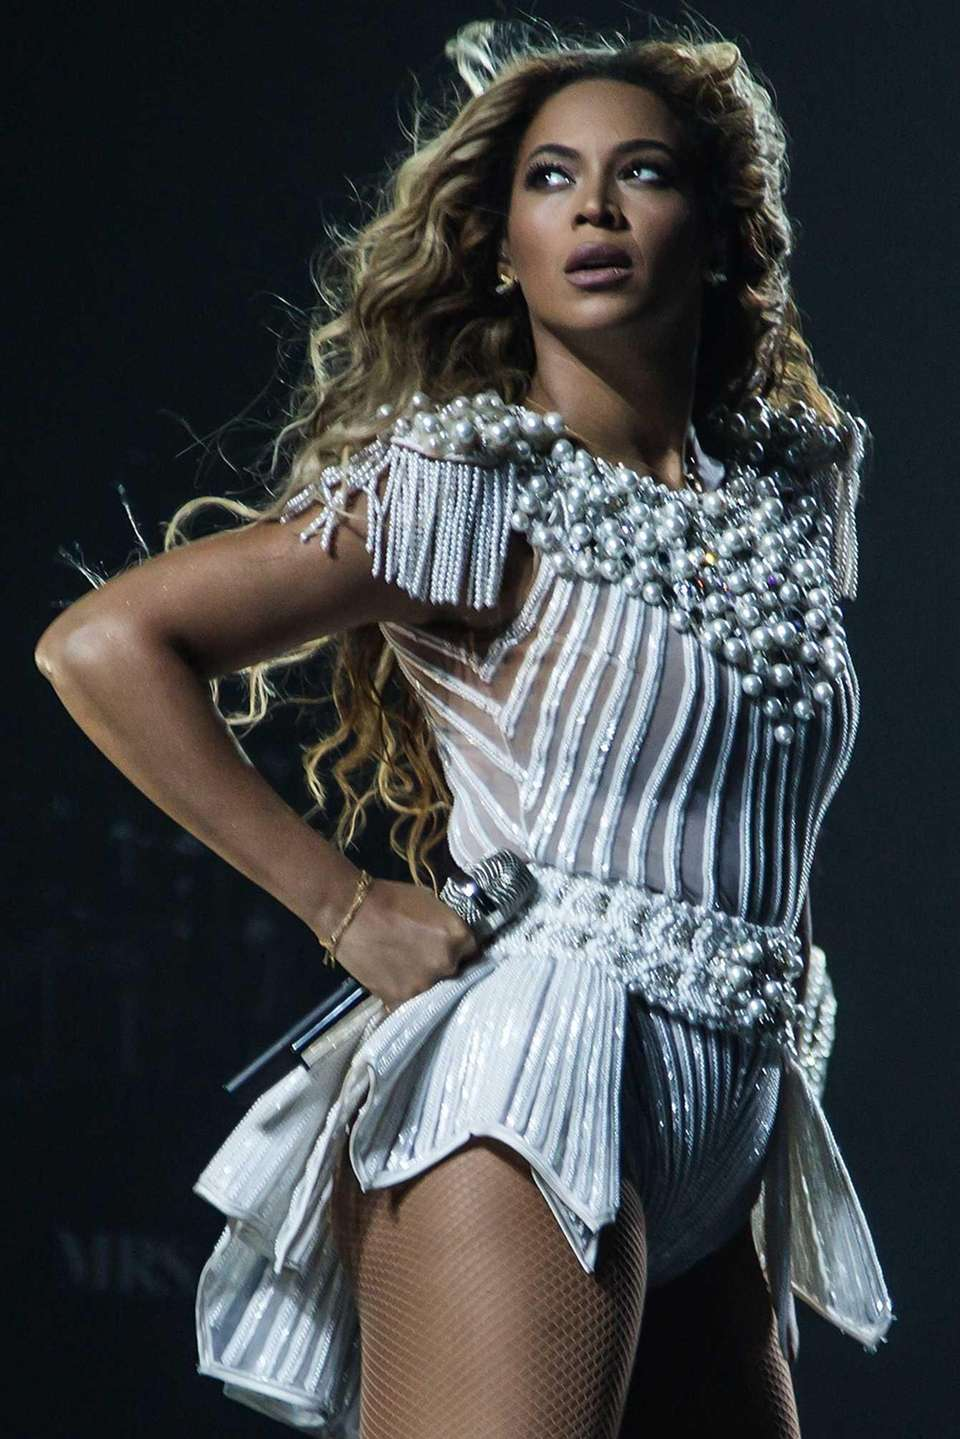 Beyoncé was born on Sept. 4, 1981.